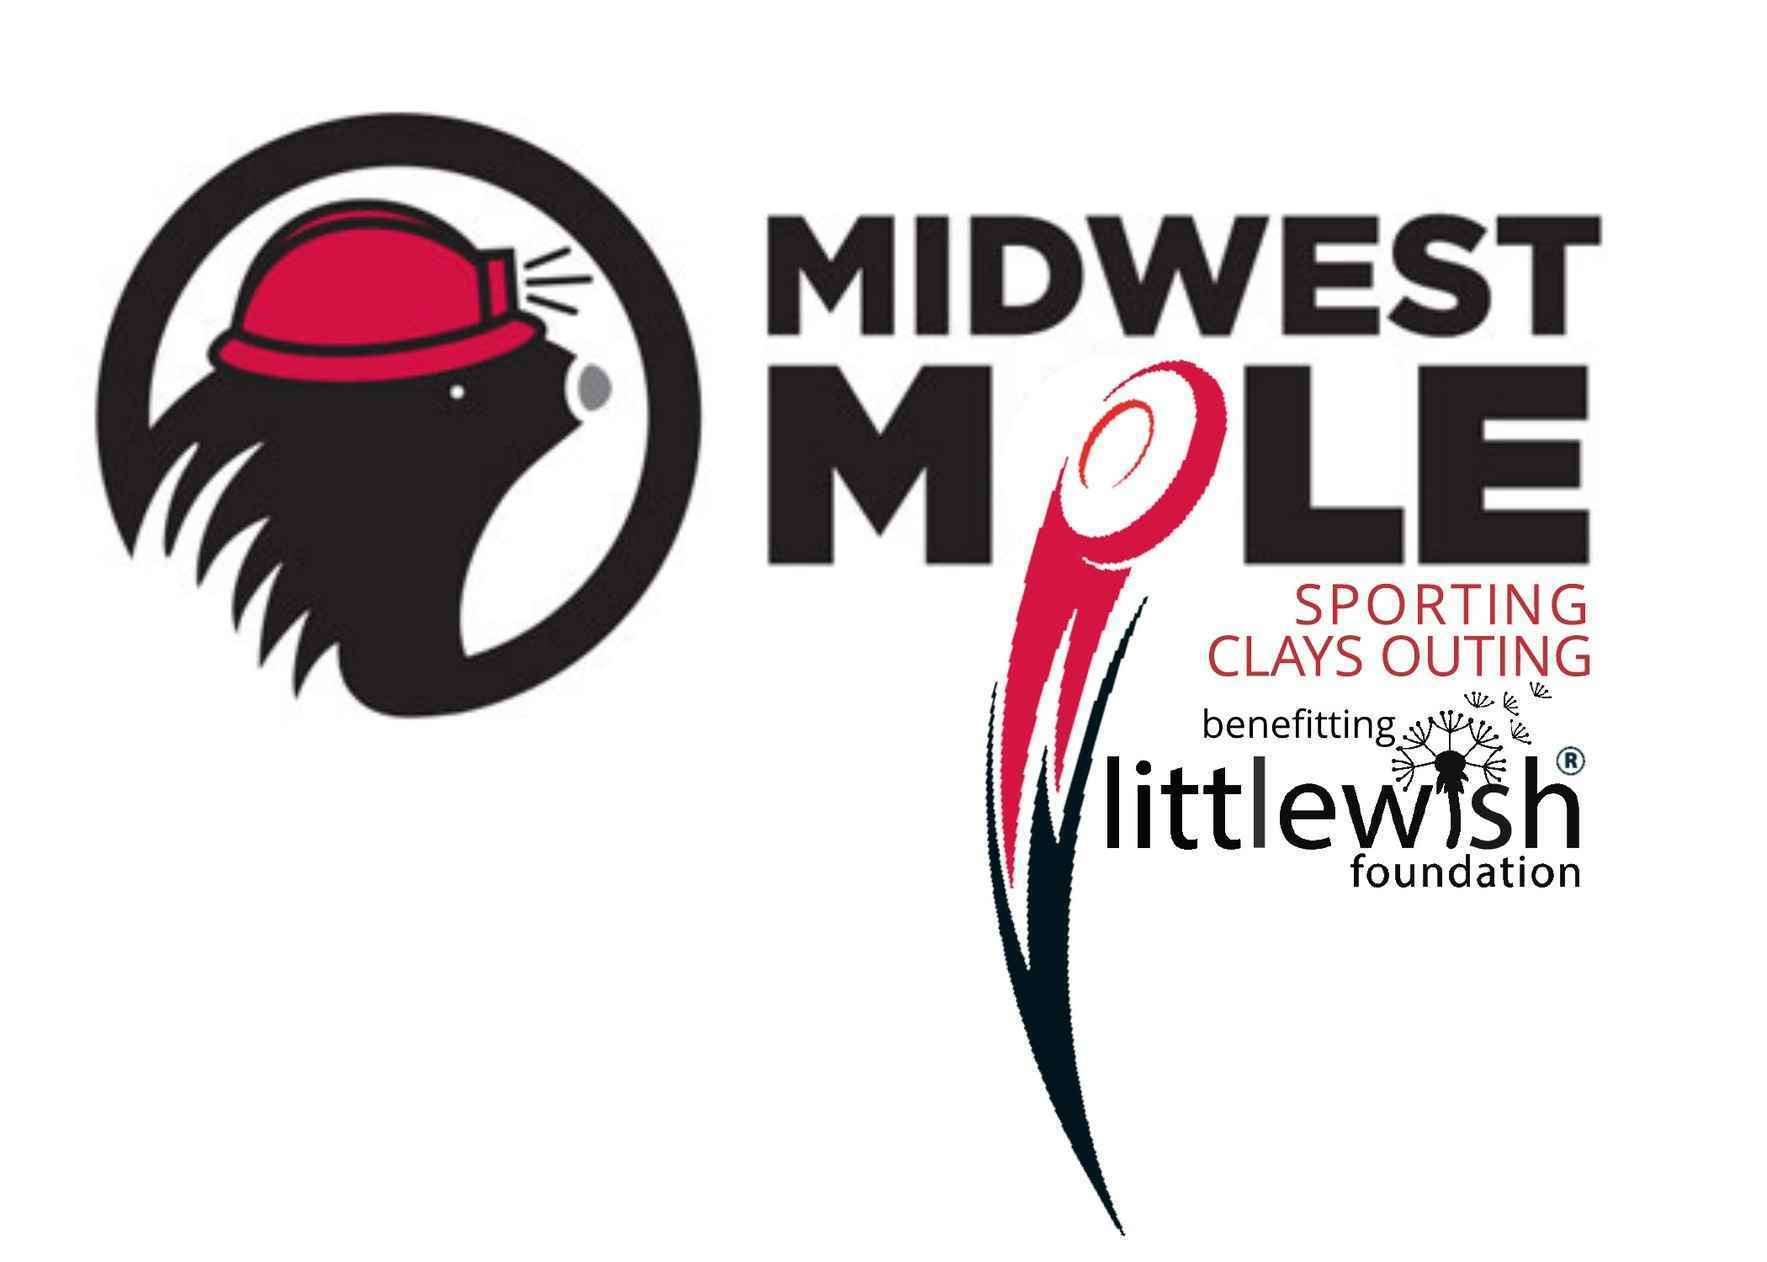 Midwest Mole Sporting Clays Outing image